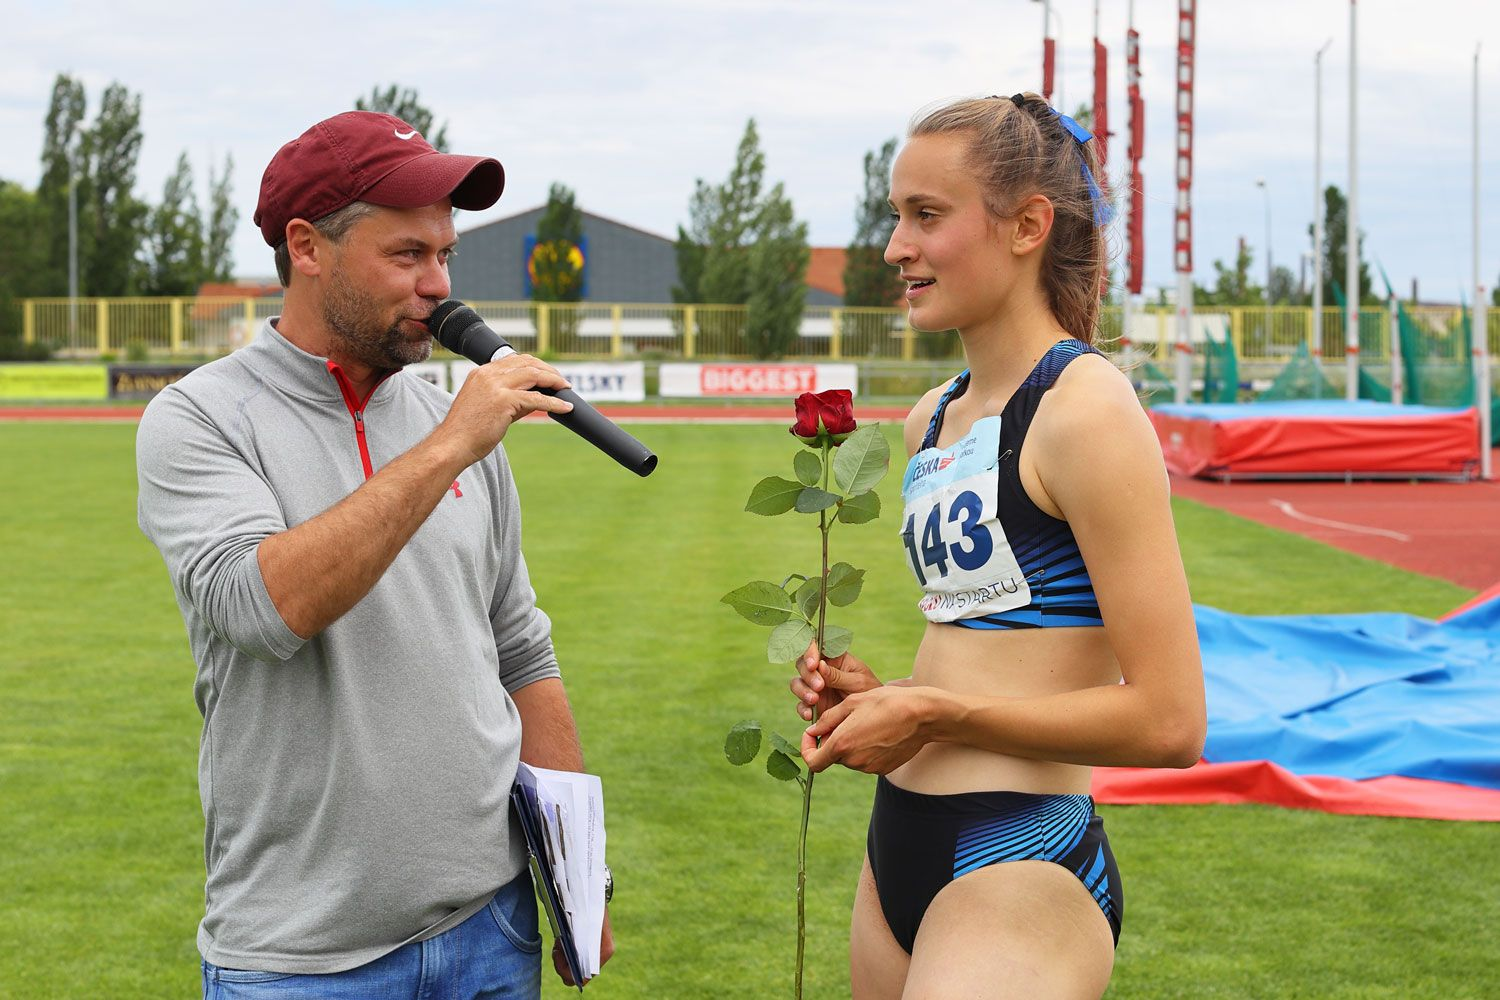 Combined Events Plzen Sunday 30